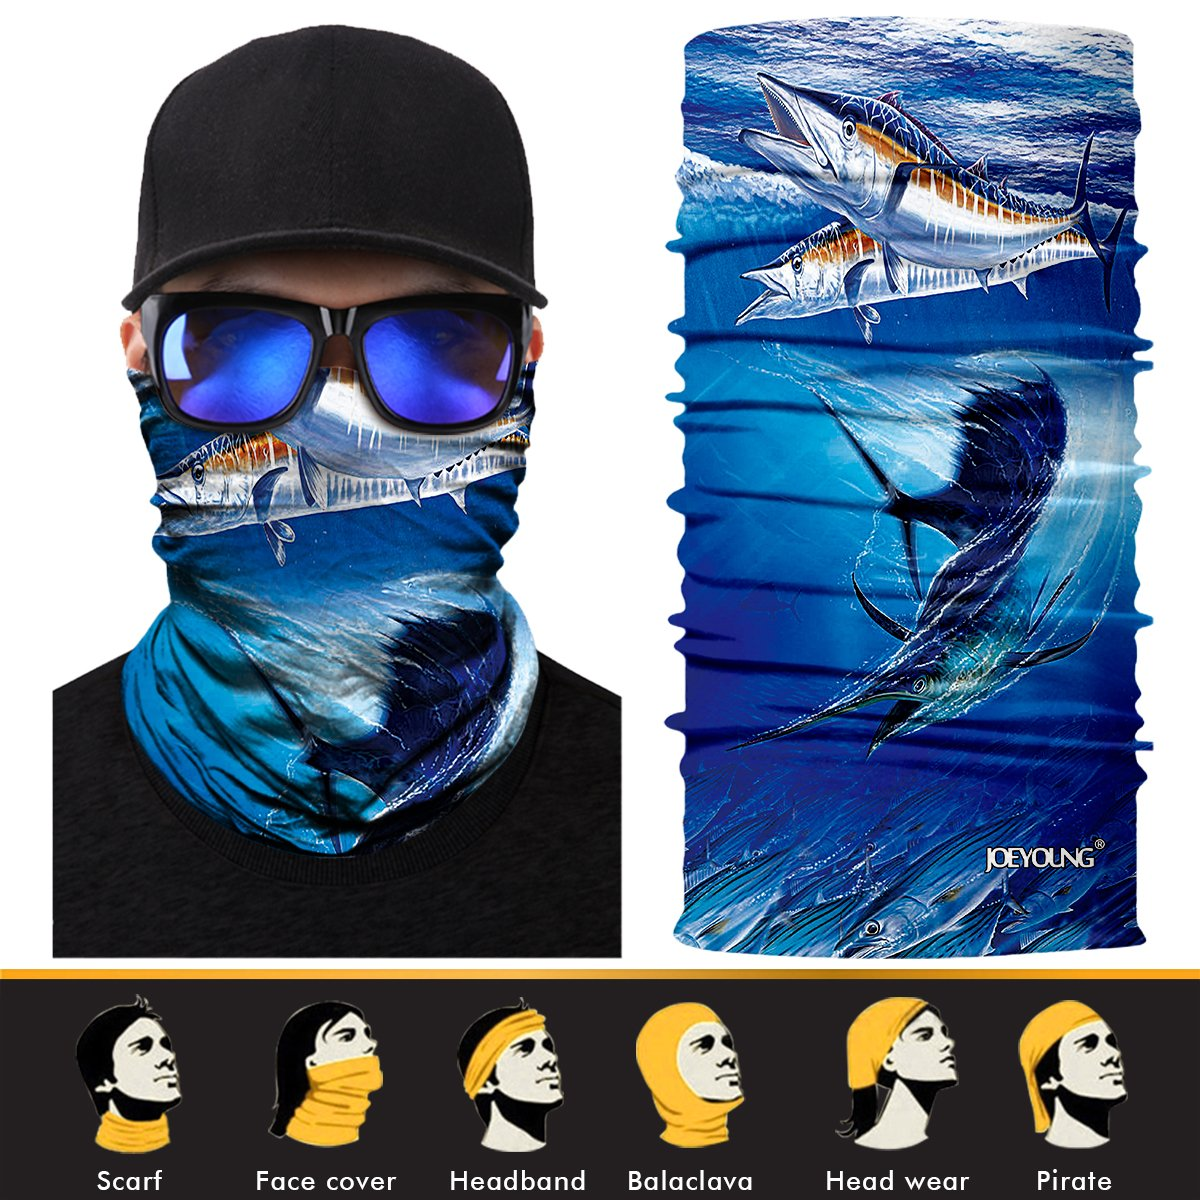 JOEYOUNG 3D Face Sun Mask, Neck Gaiter, Headwear, Magic Scarf, Balaclava, Bandana, Headband Fishing, Hunting, Yard Work, Running, Motorcycling, UV Protection, Great for Men & Women